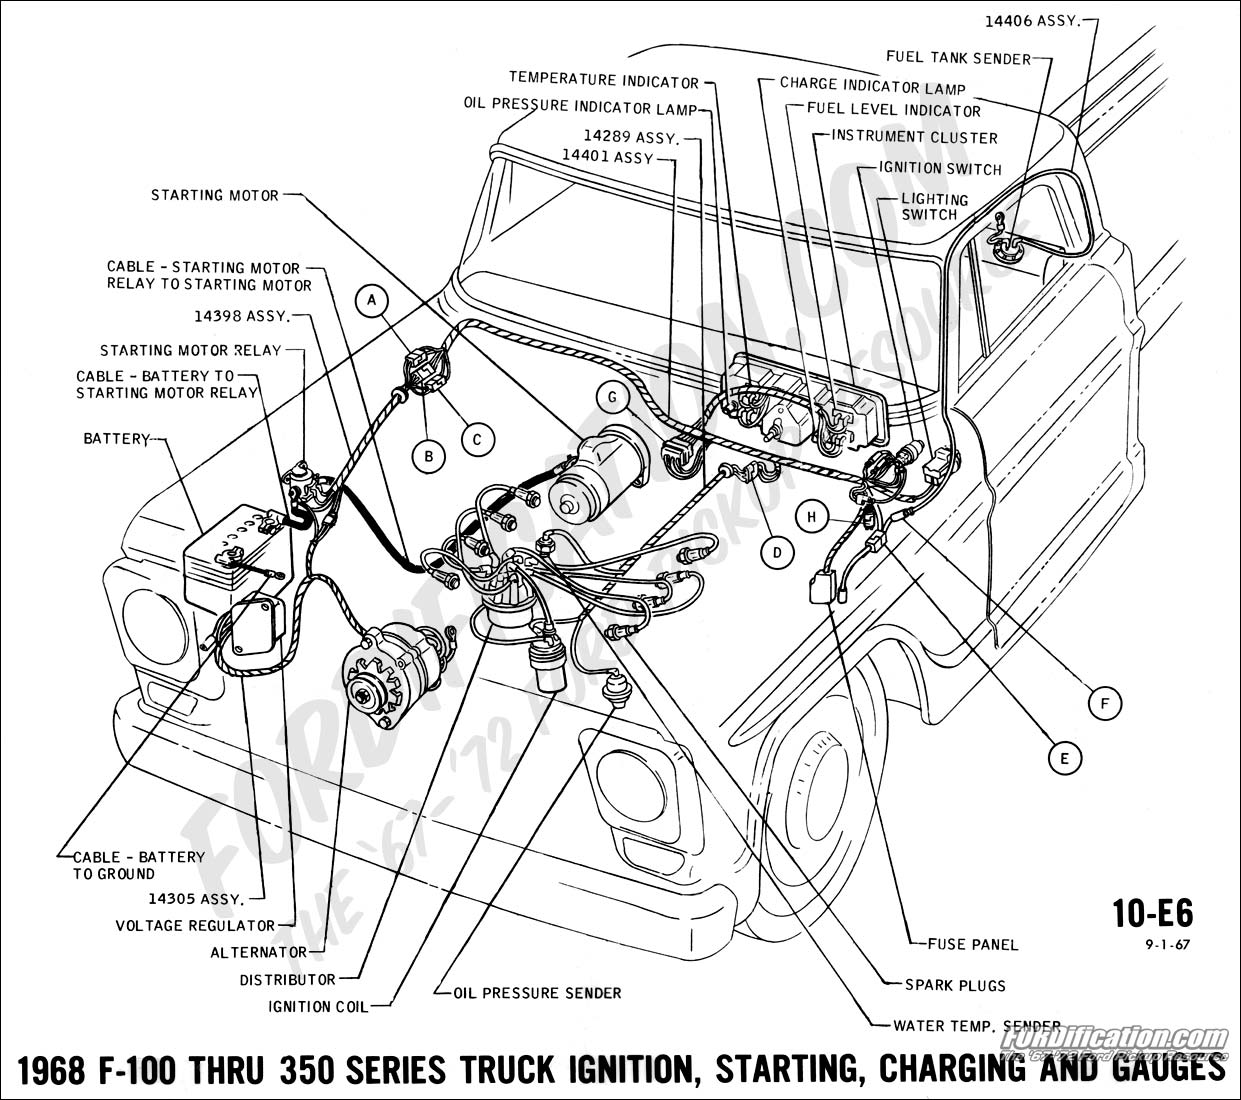 ford truck technical drawings and schematics section h wiring rh fordification com Ford Electrical Wiring Diagrams Ford F-350 Wiring Diagram